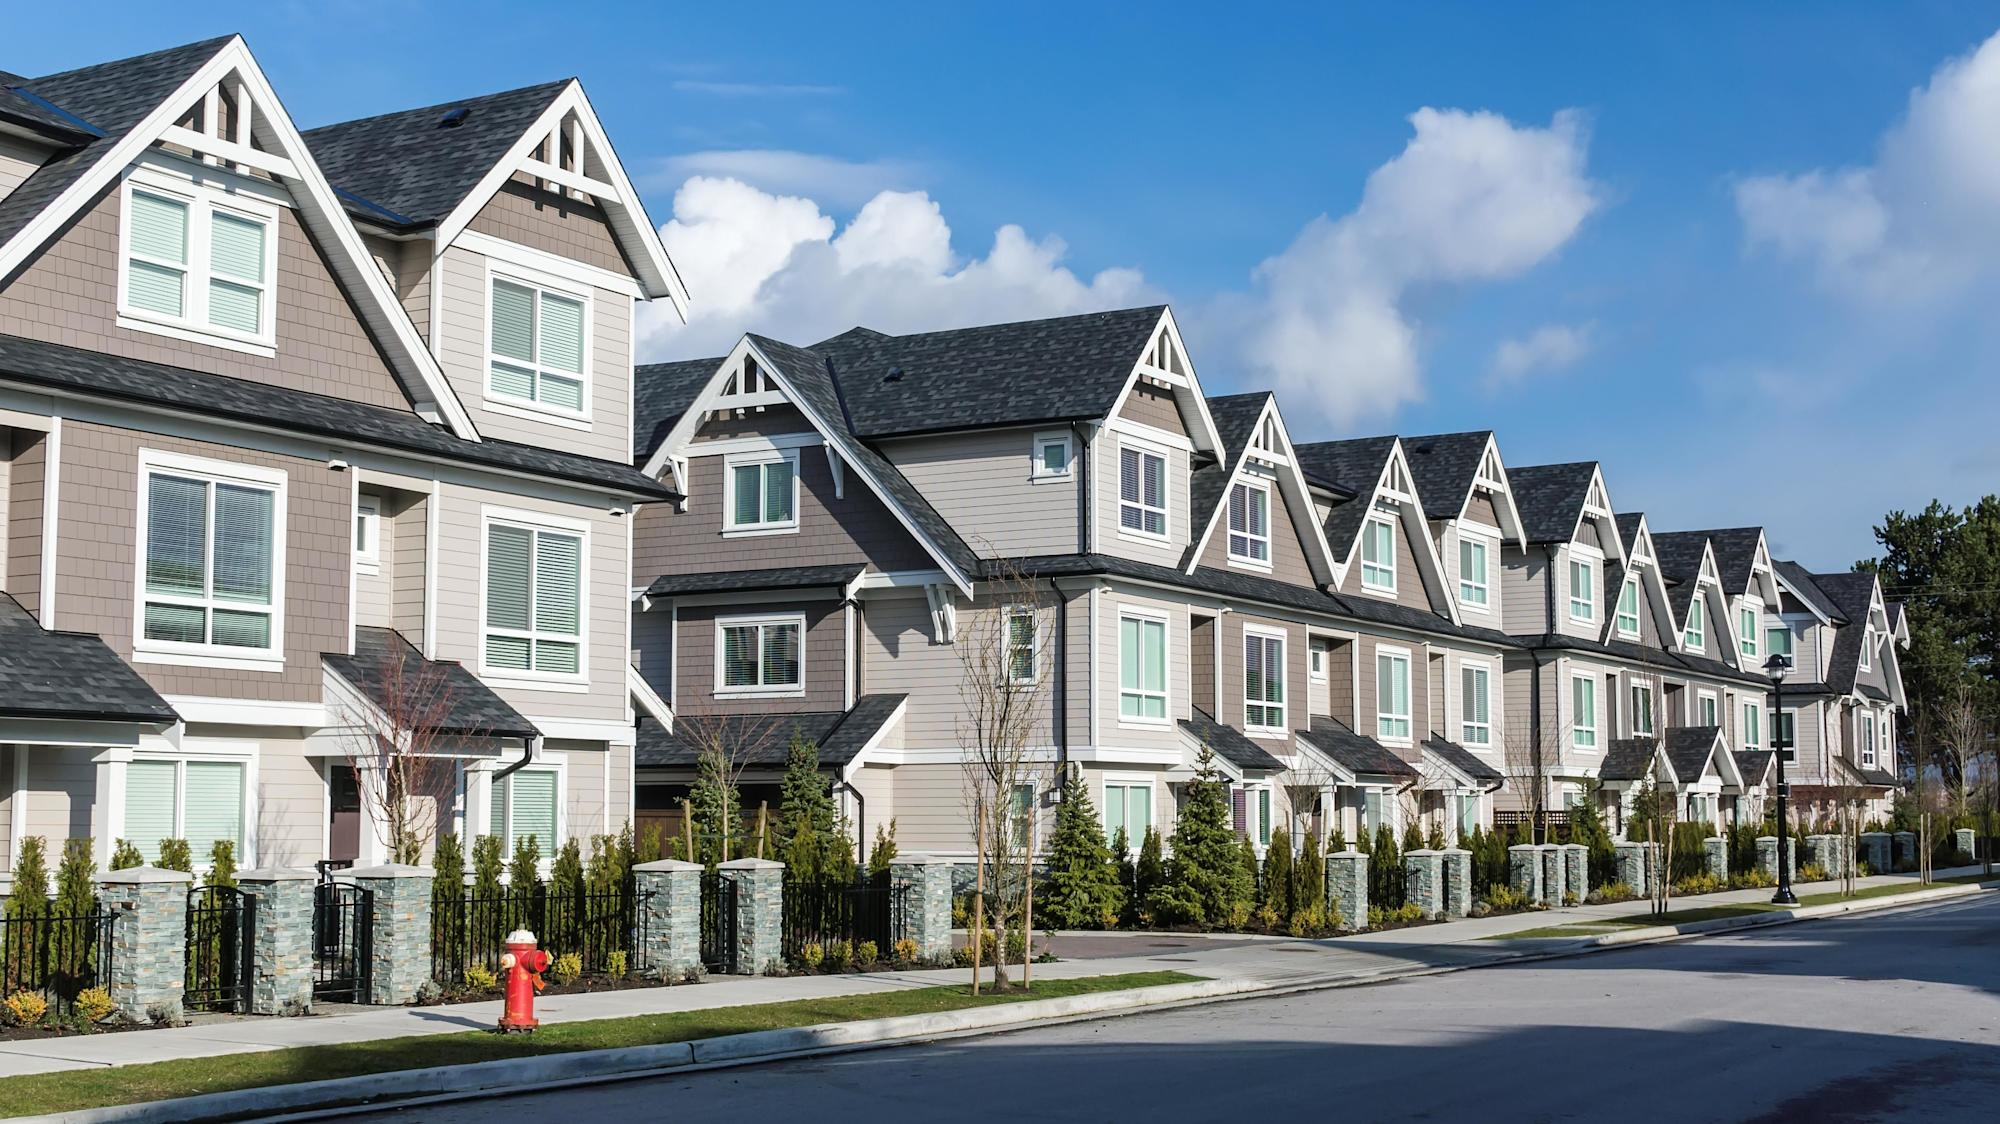 The most in-demand types of homes during COVID-19